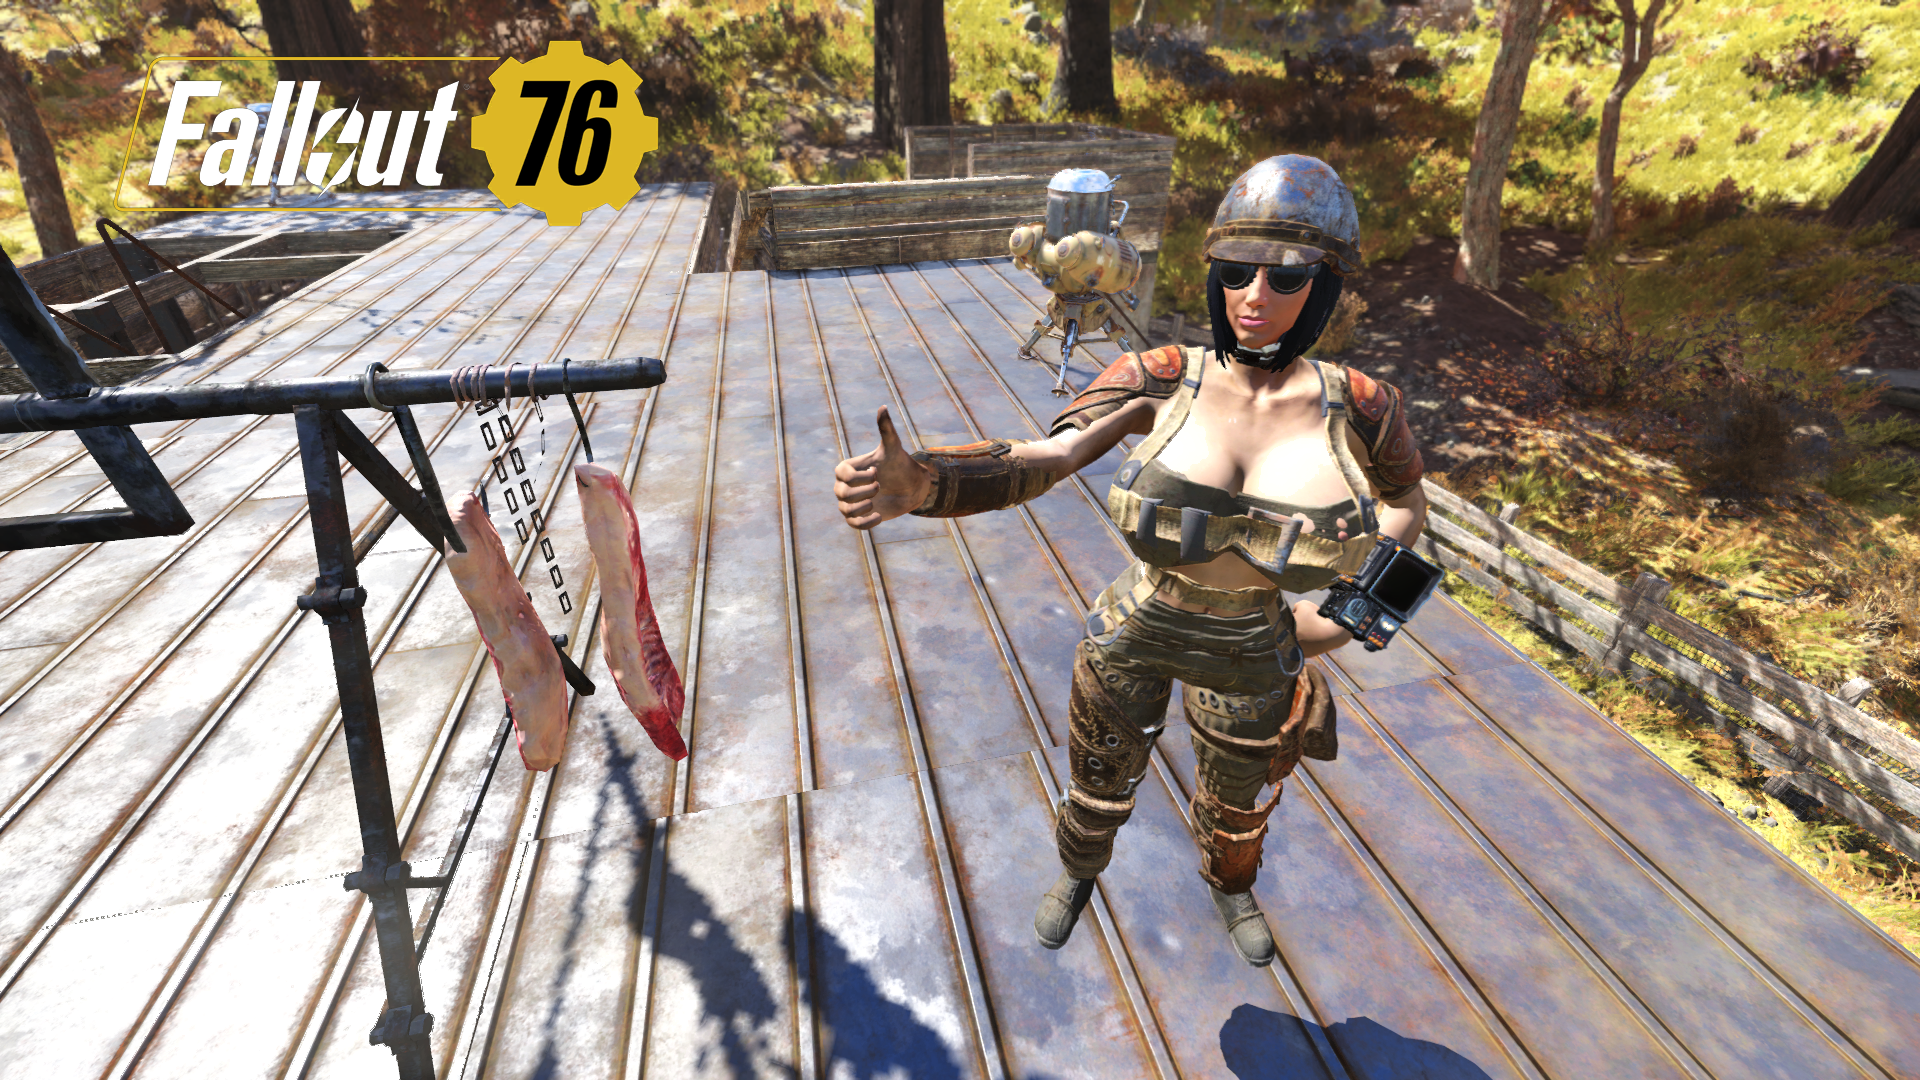 My Fallout 76 Character 4 at Fallout 76 Nexus - Mods and